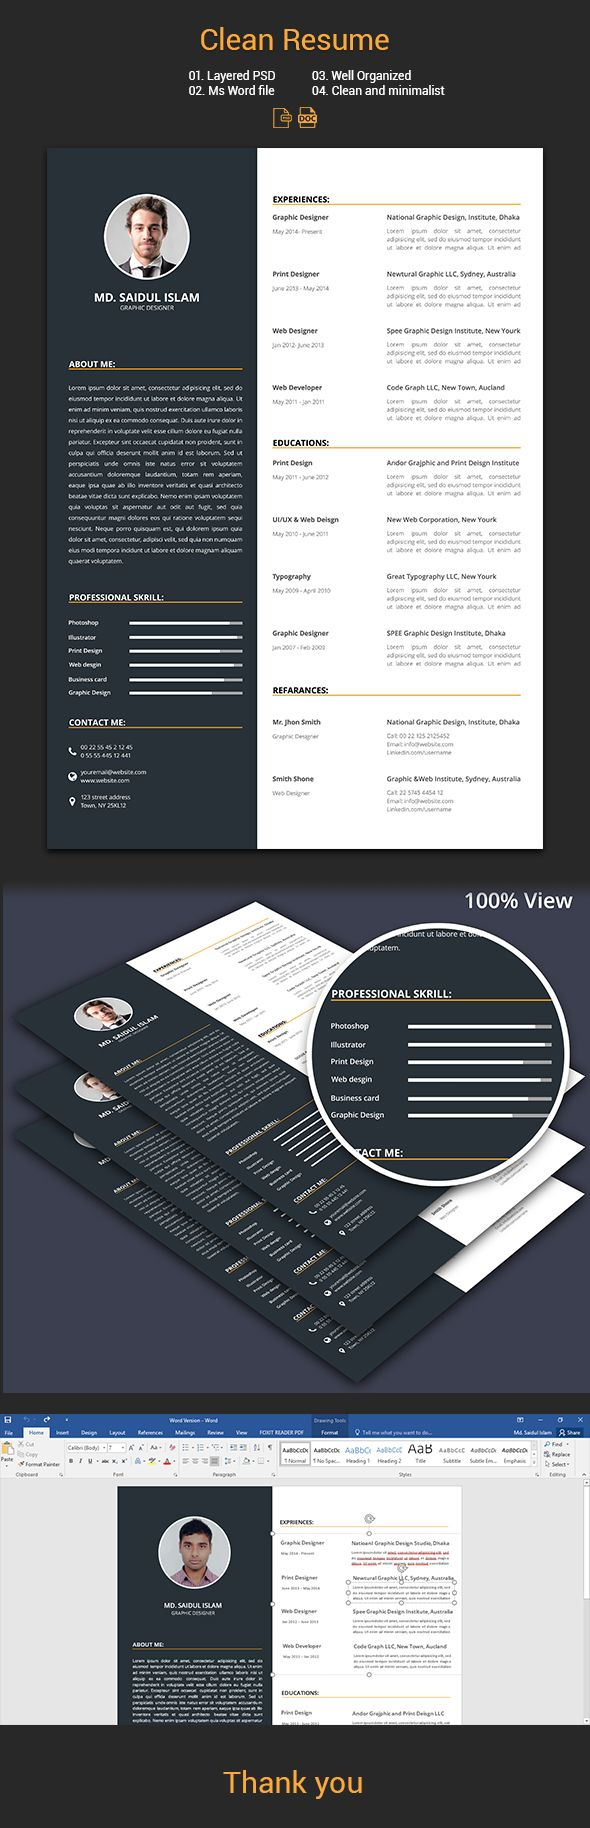 Get the best resume cv for your